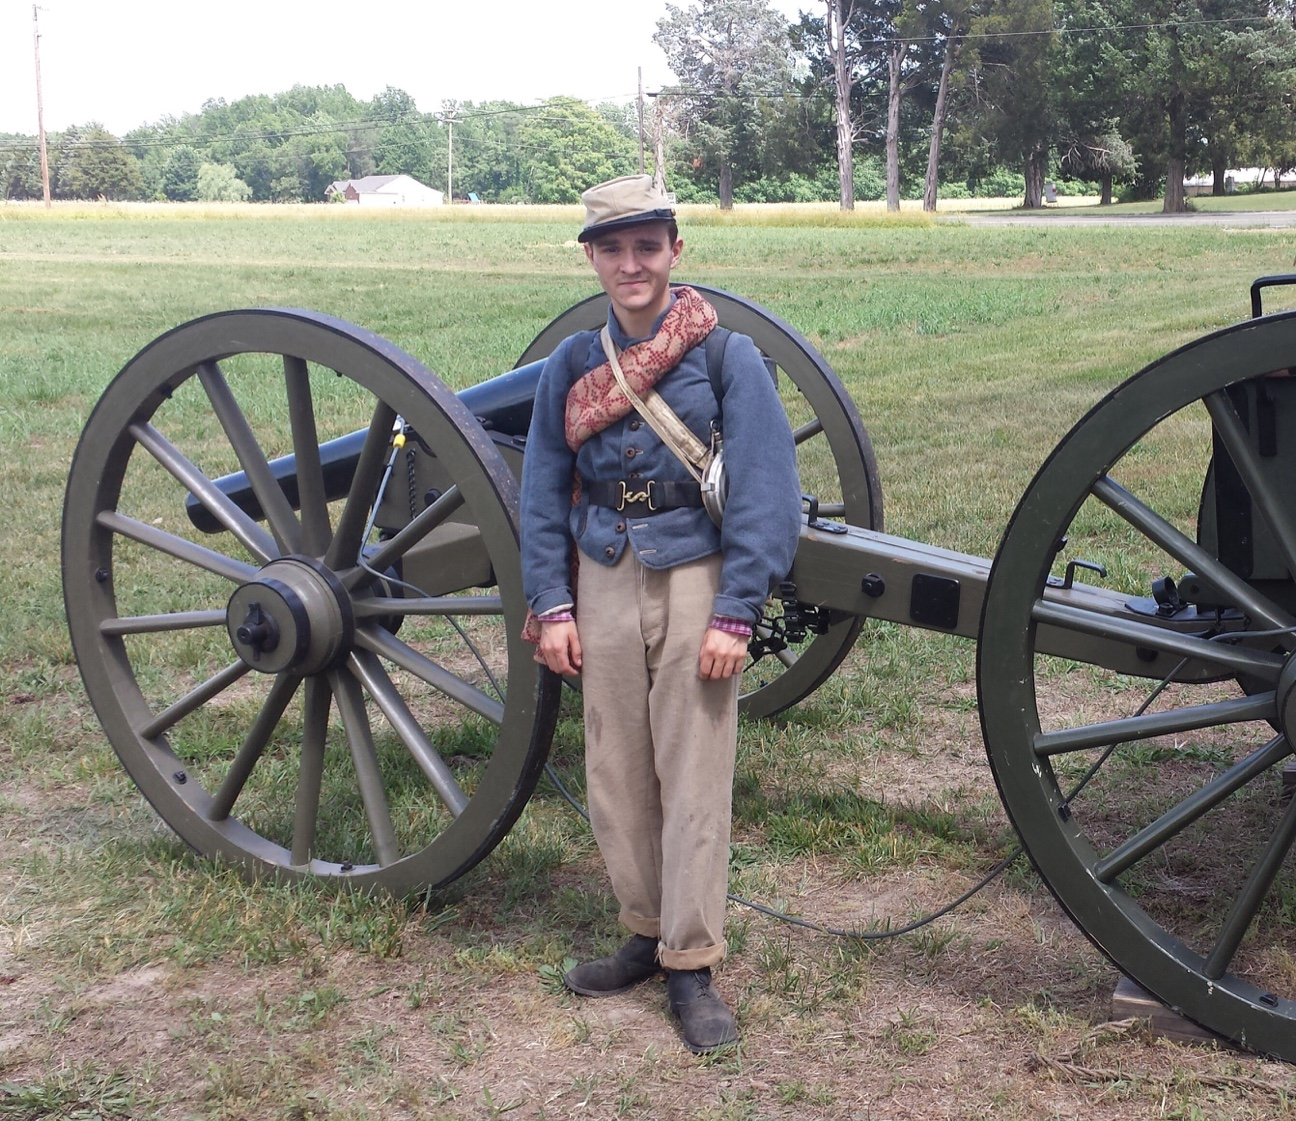 The author posing in the uniform of a Confederate soldier. Photo Courtesy of Jesse Campana